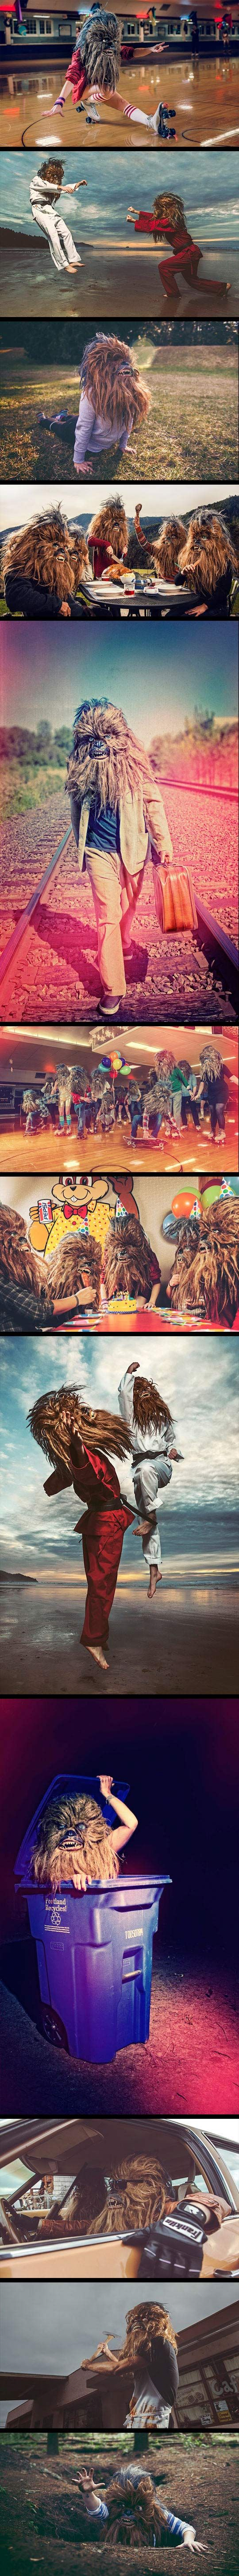 The everyday life of Wookiees